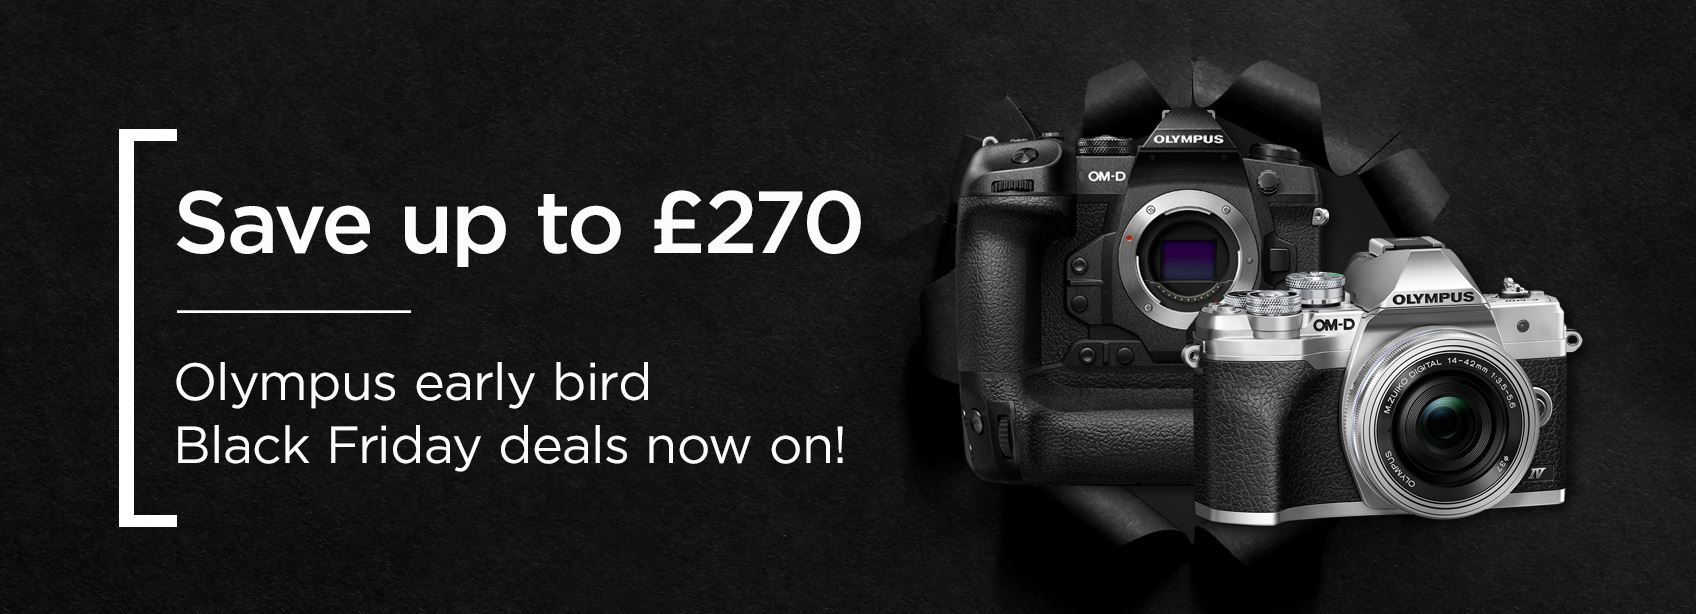 Save up to £270 - Olympus early bird Black Friday deals now on!